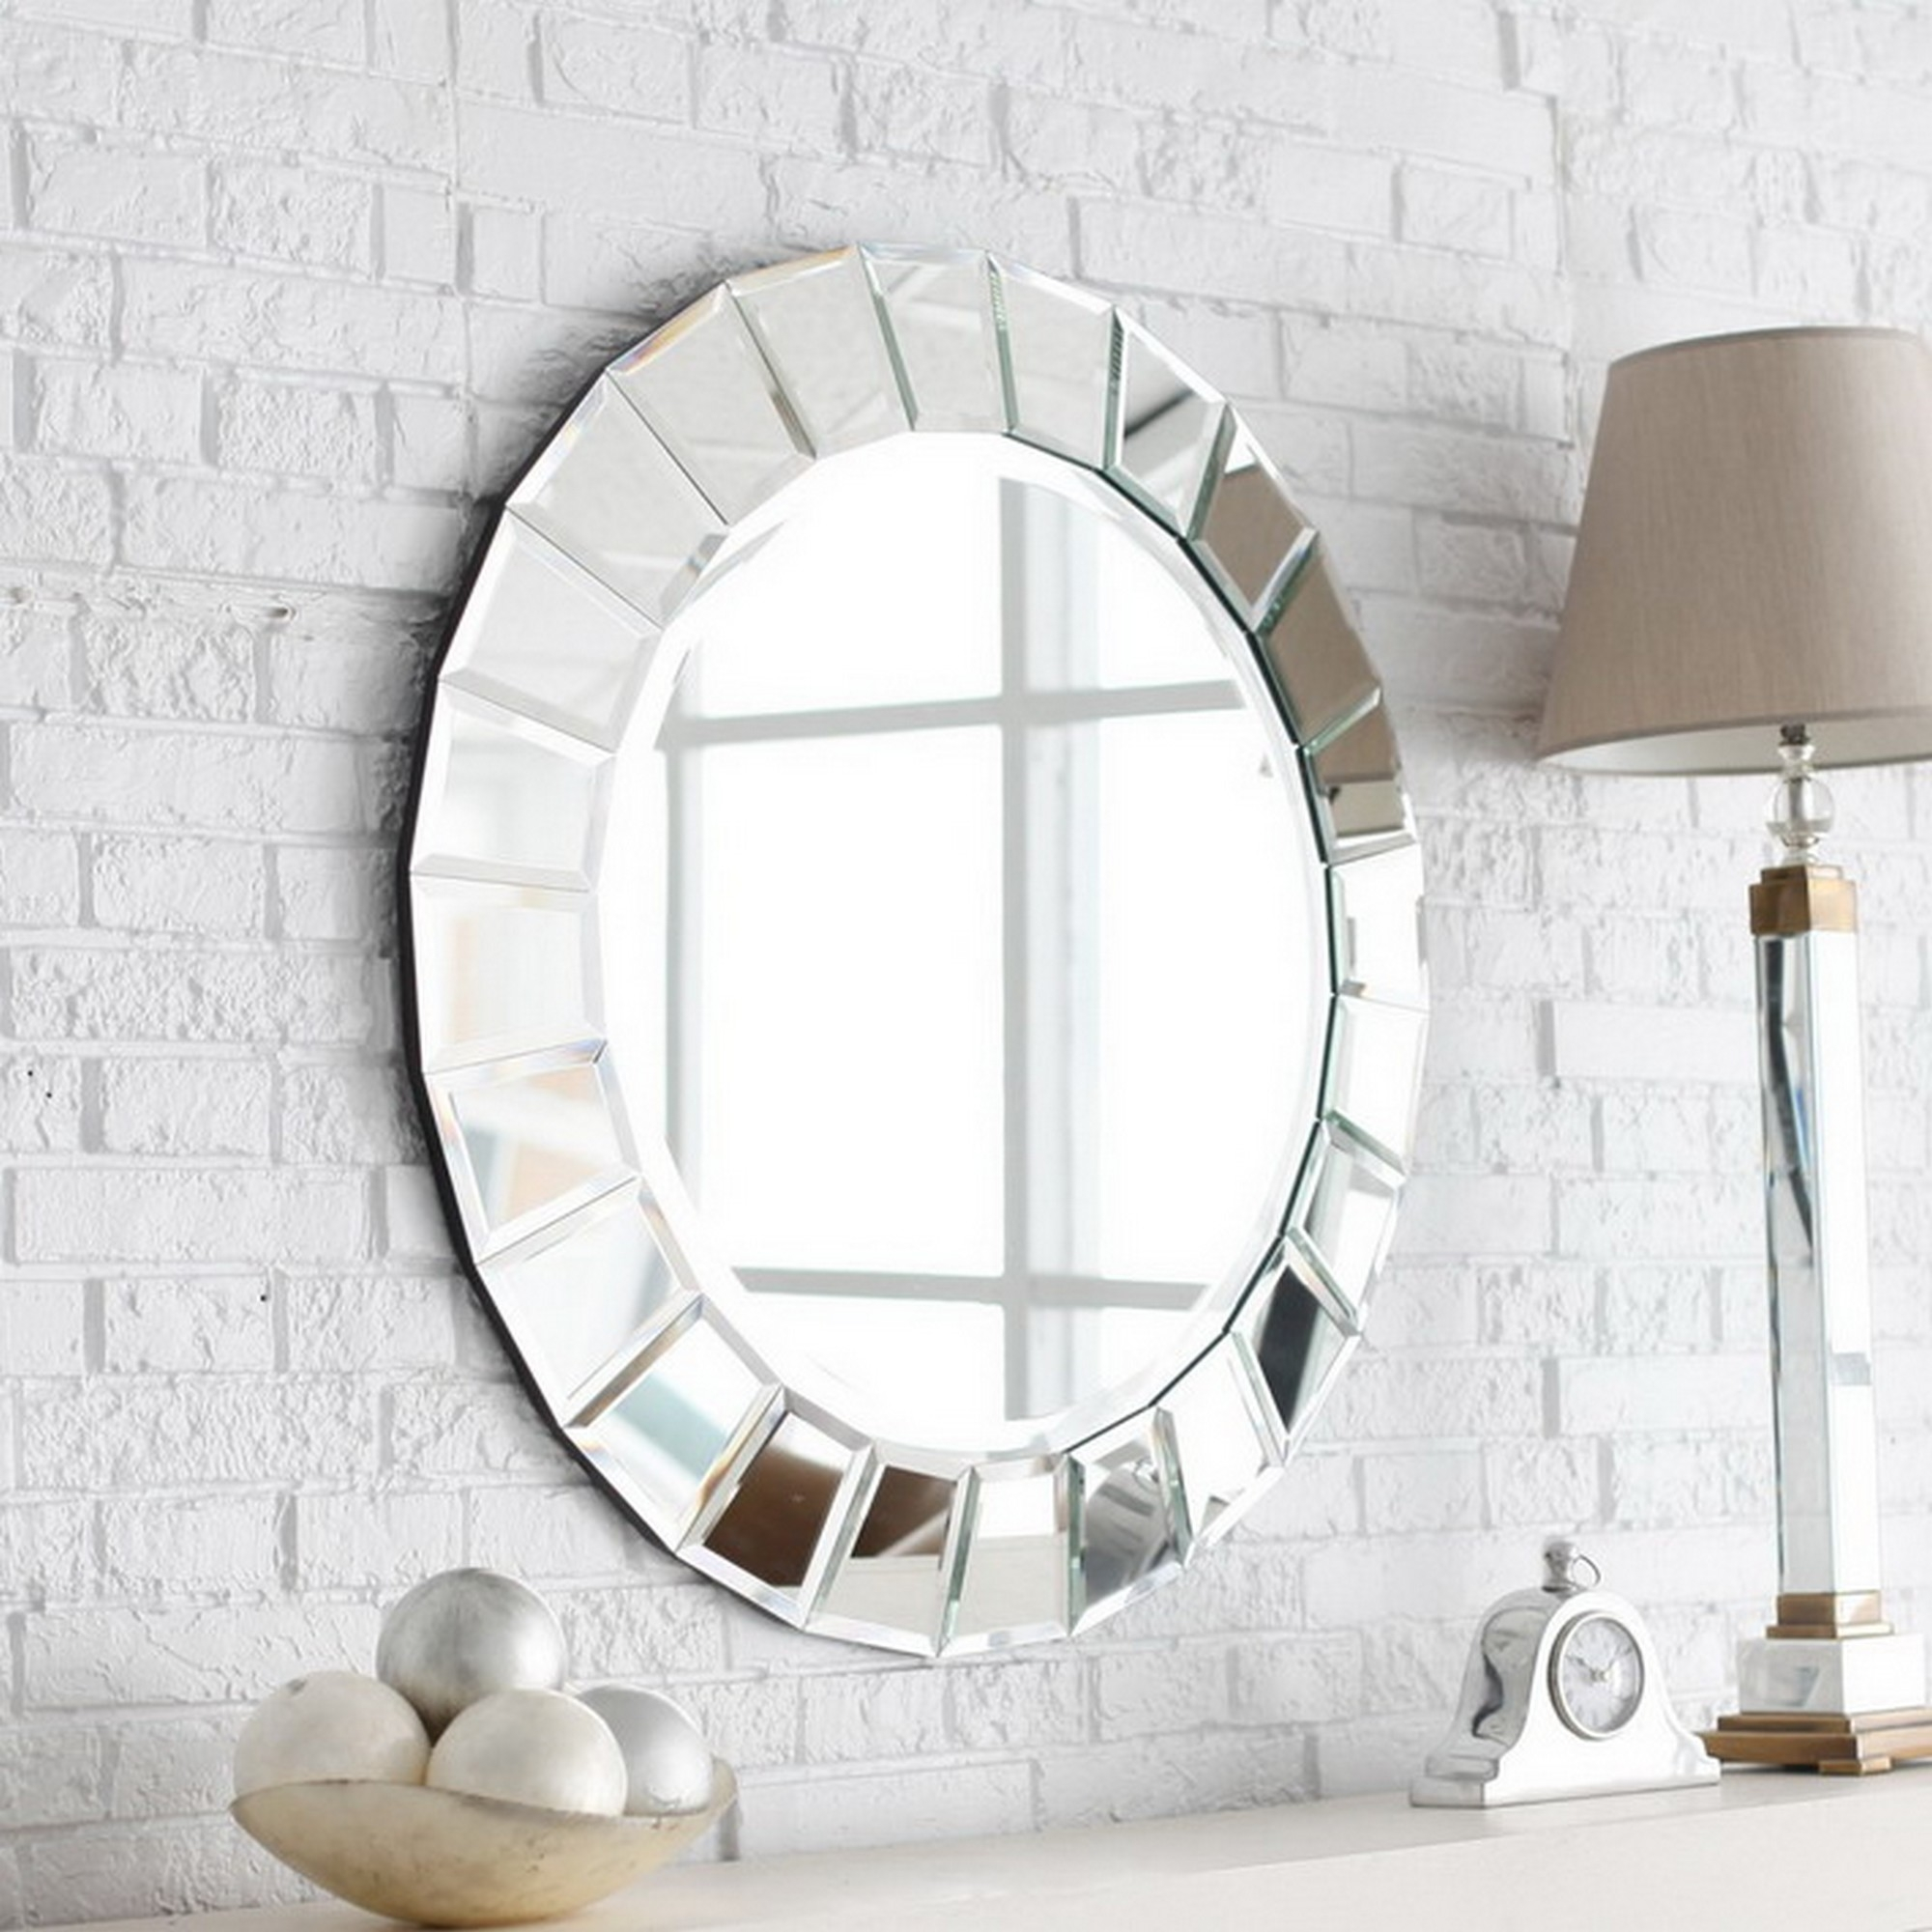 Decorative Round Mirrors For Walls Inarace Throughout Designer Mirrors For Walls (Image 6 of 15)